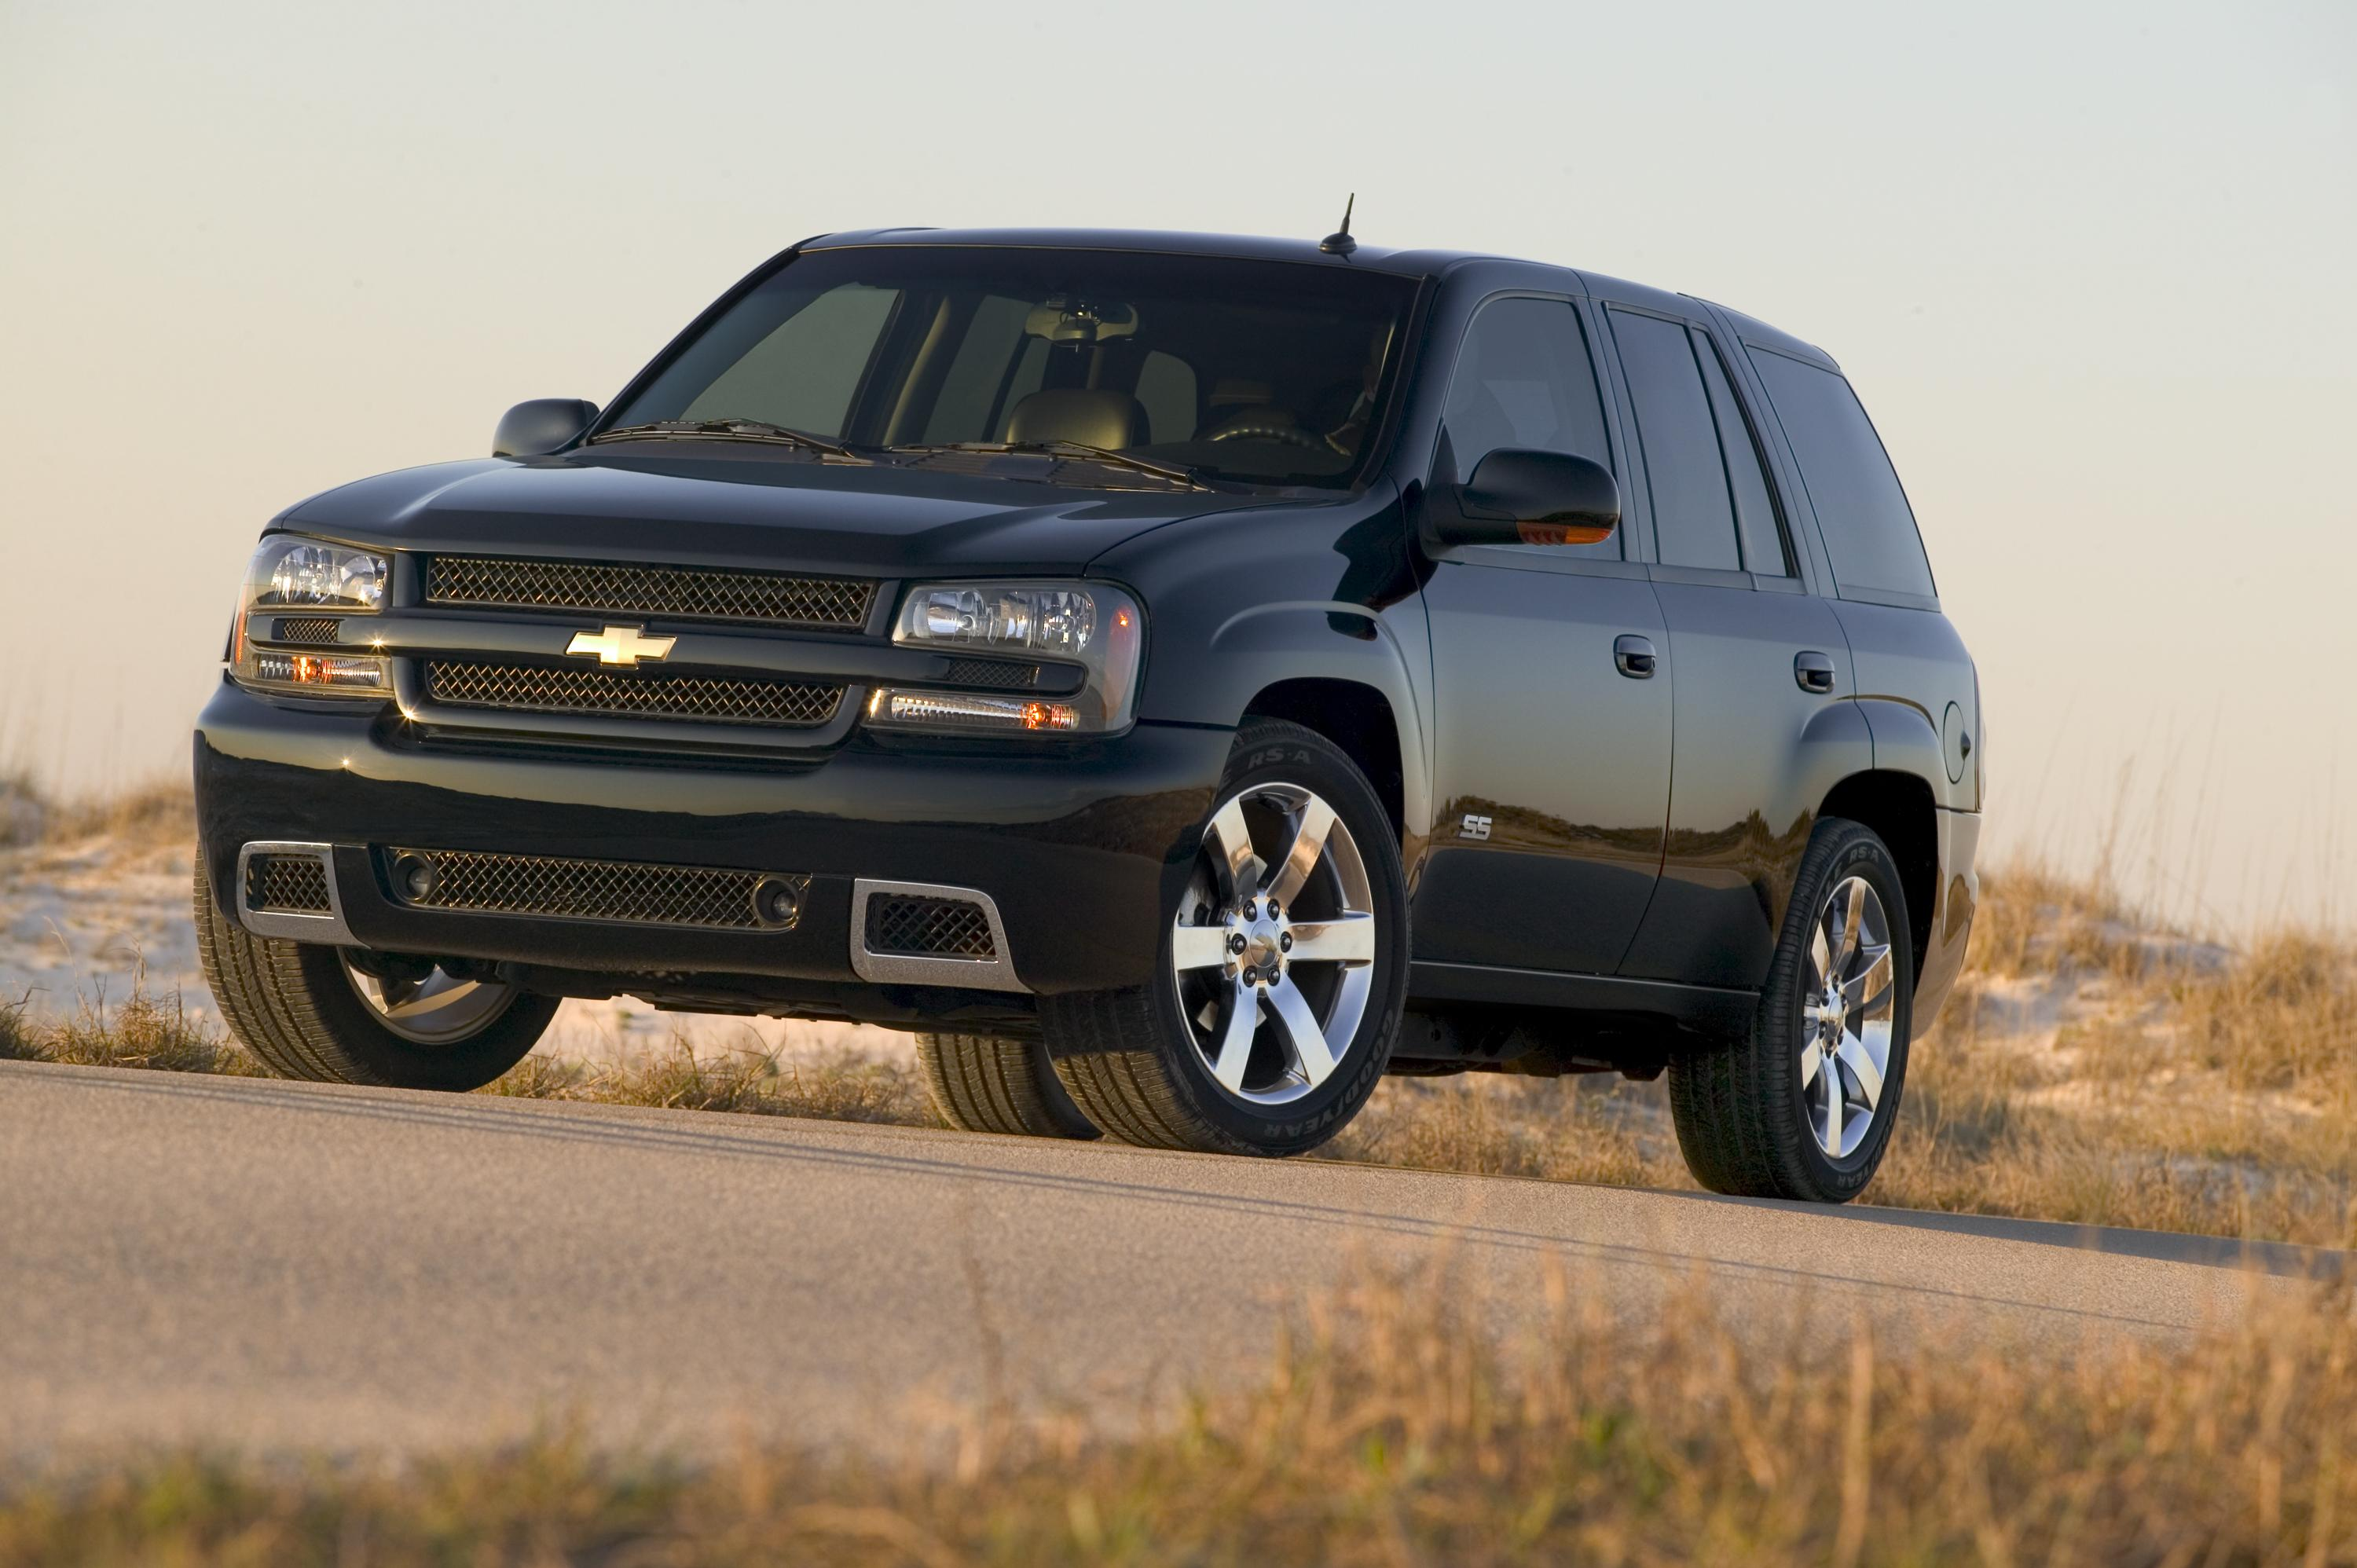 Chevy trailblazer is a stalwart of the suv market ranking as second best selling suv in the united states in 2006 and one of the top 20 vehicle sellers for